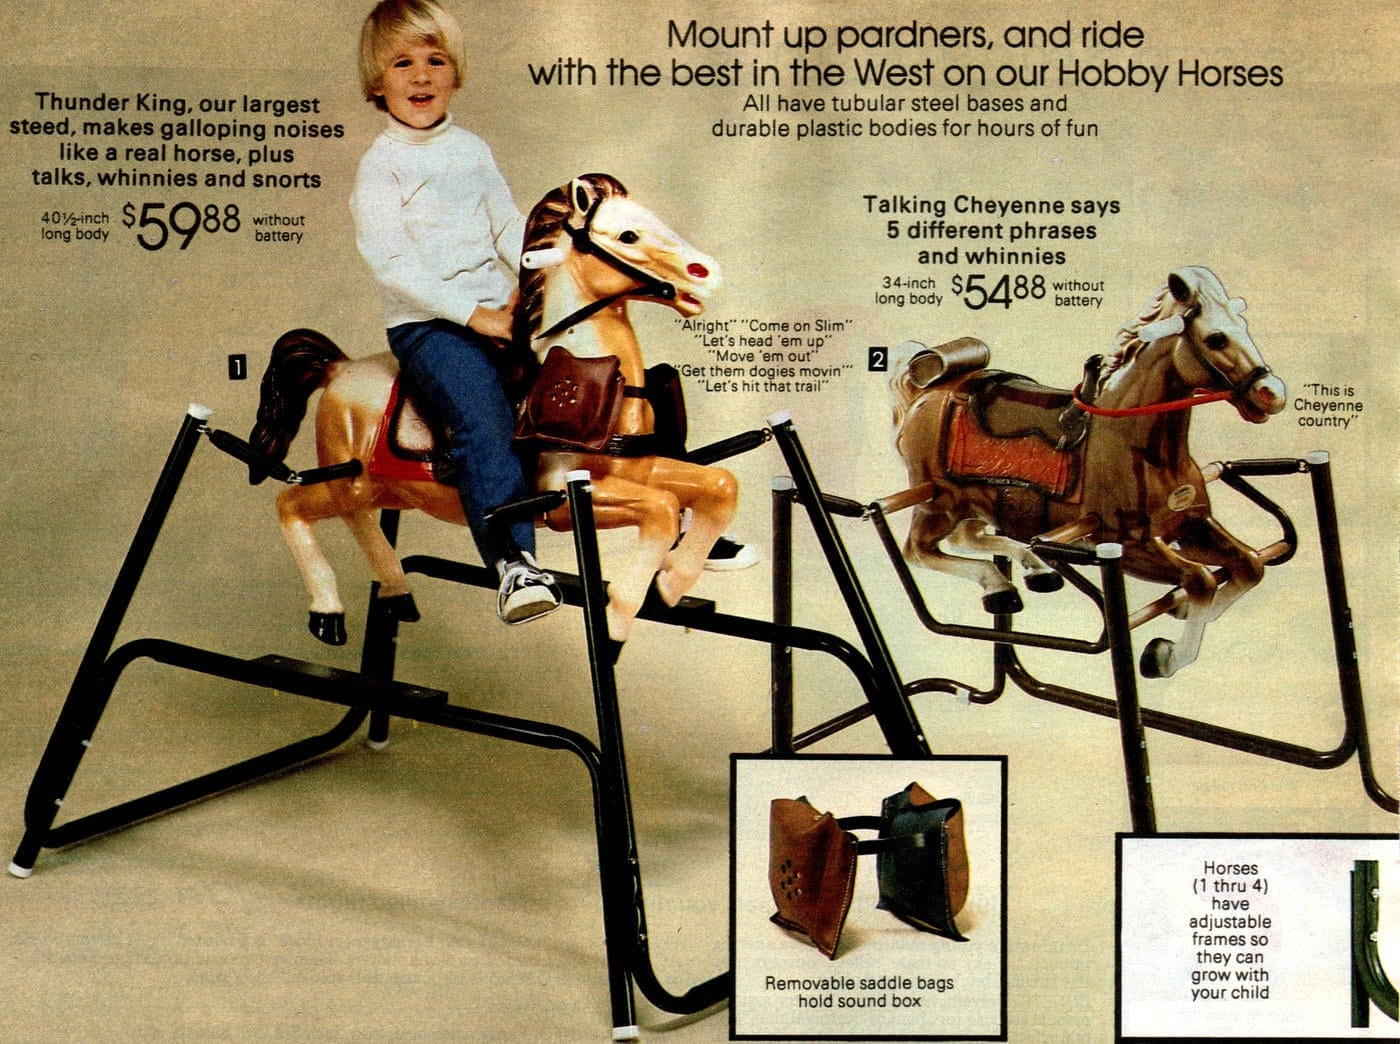 Ride on horse toys 1981